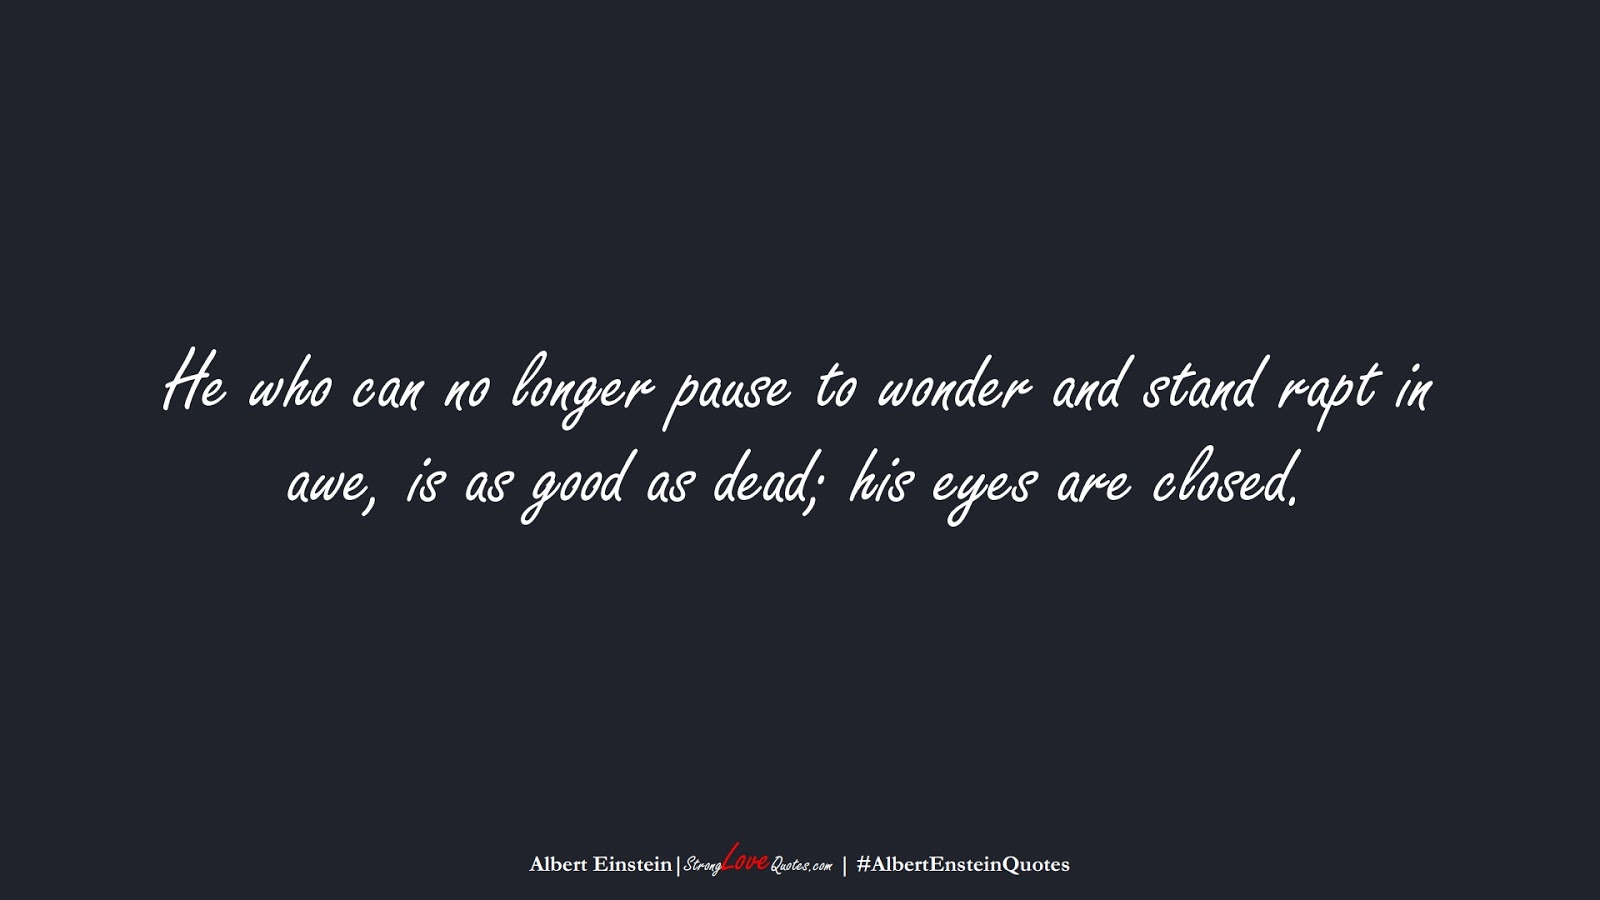 He who can no longer pause to wonder and stand rapt in awe, is as good as dead; his eyes are closed. (Albert Einstein);  #AlbertEnsteinQuotes